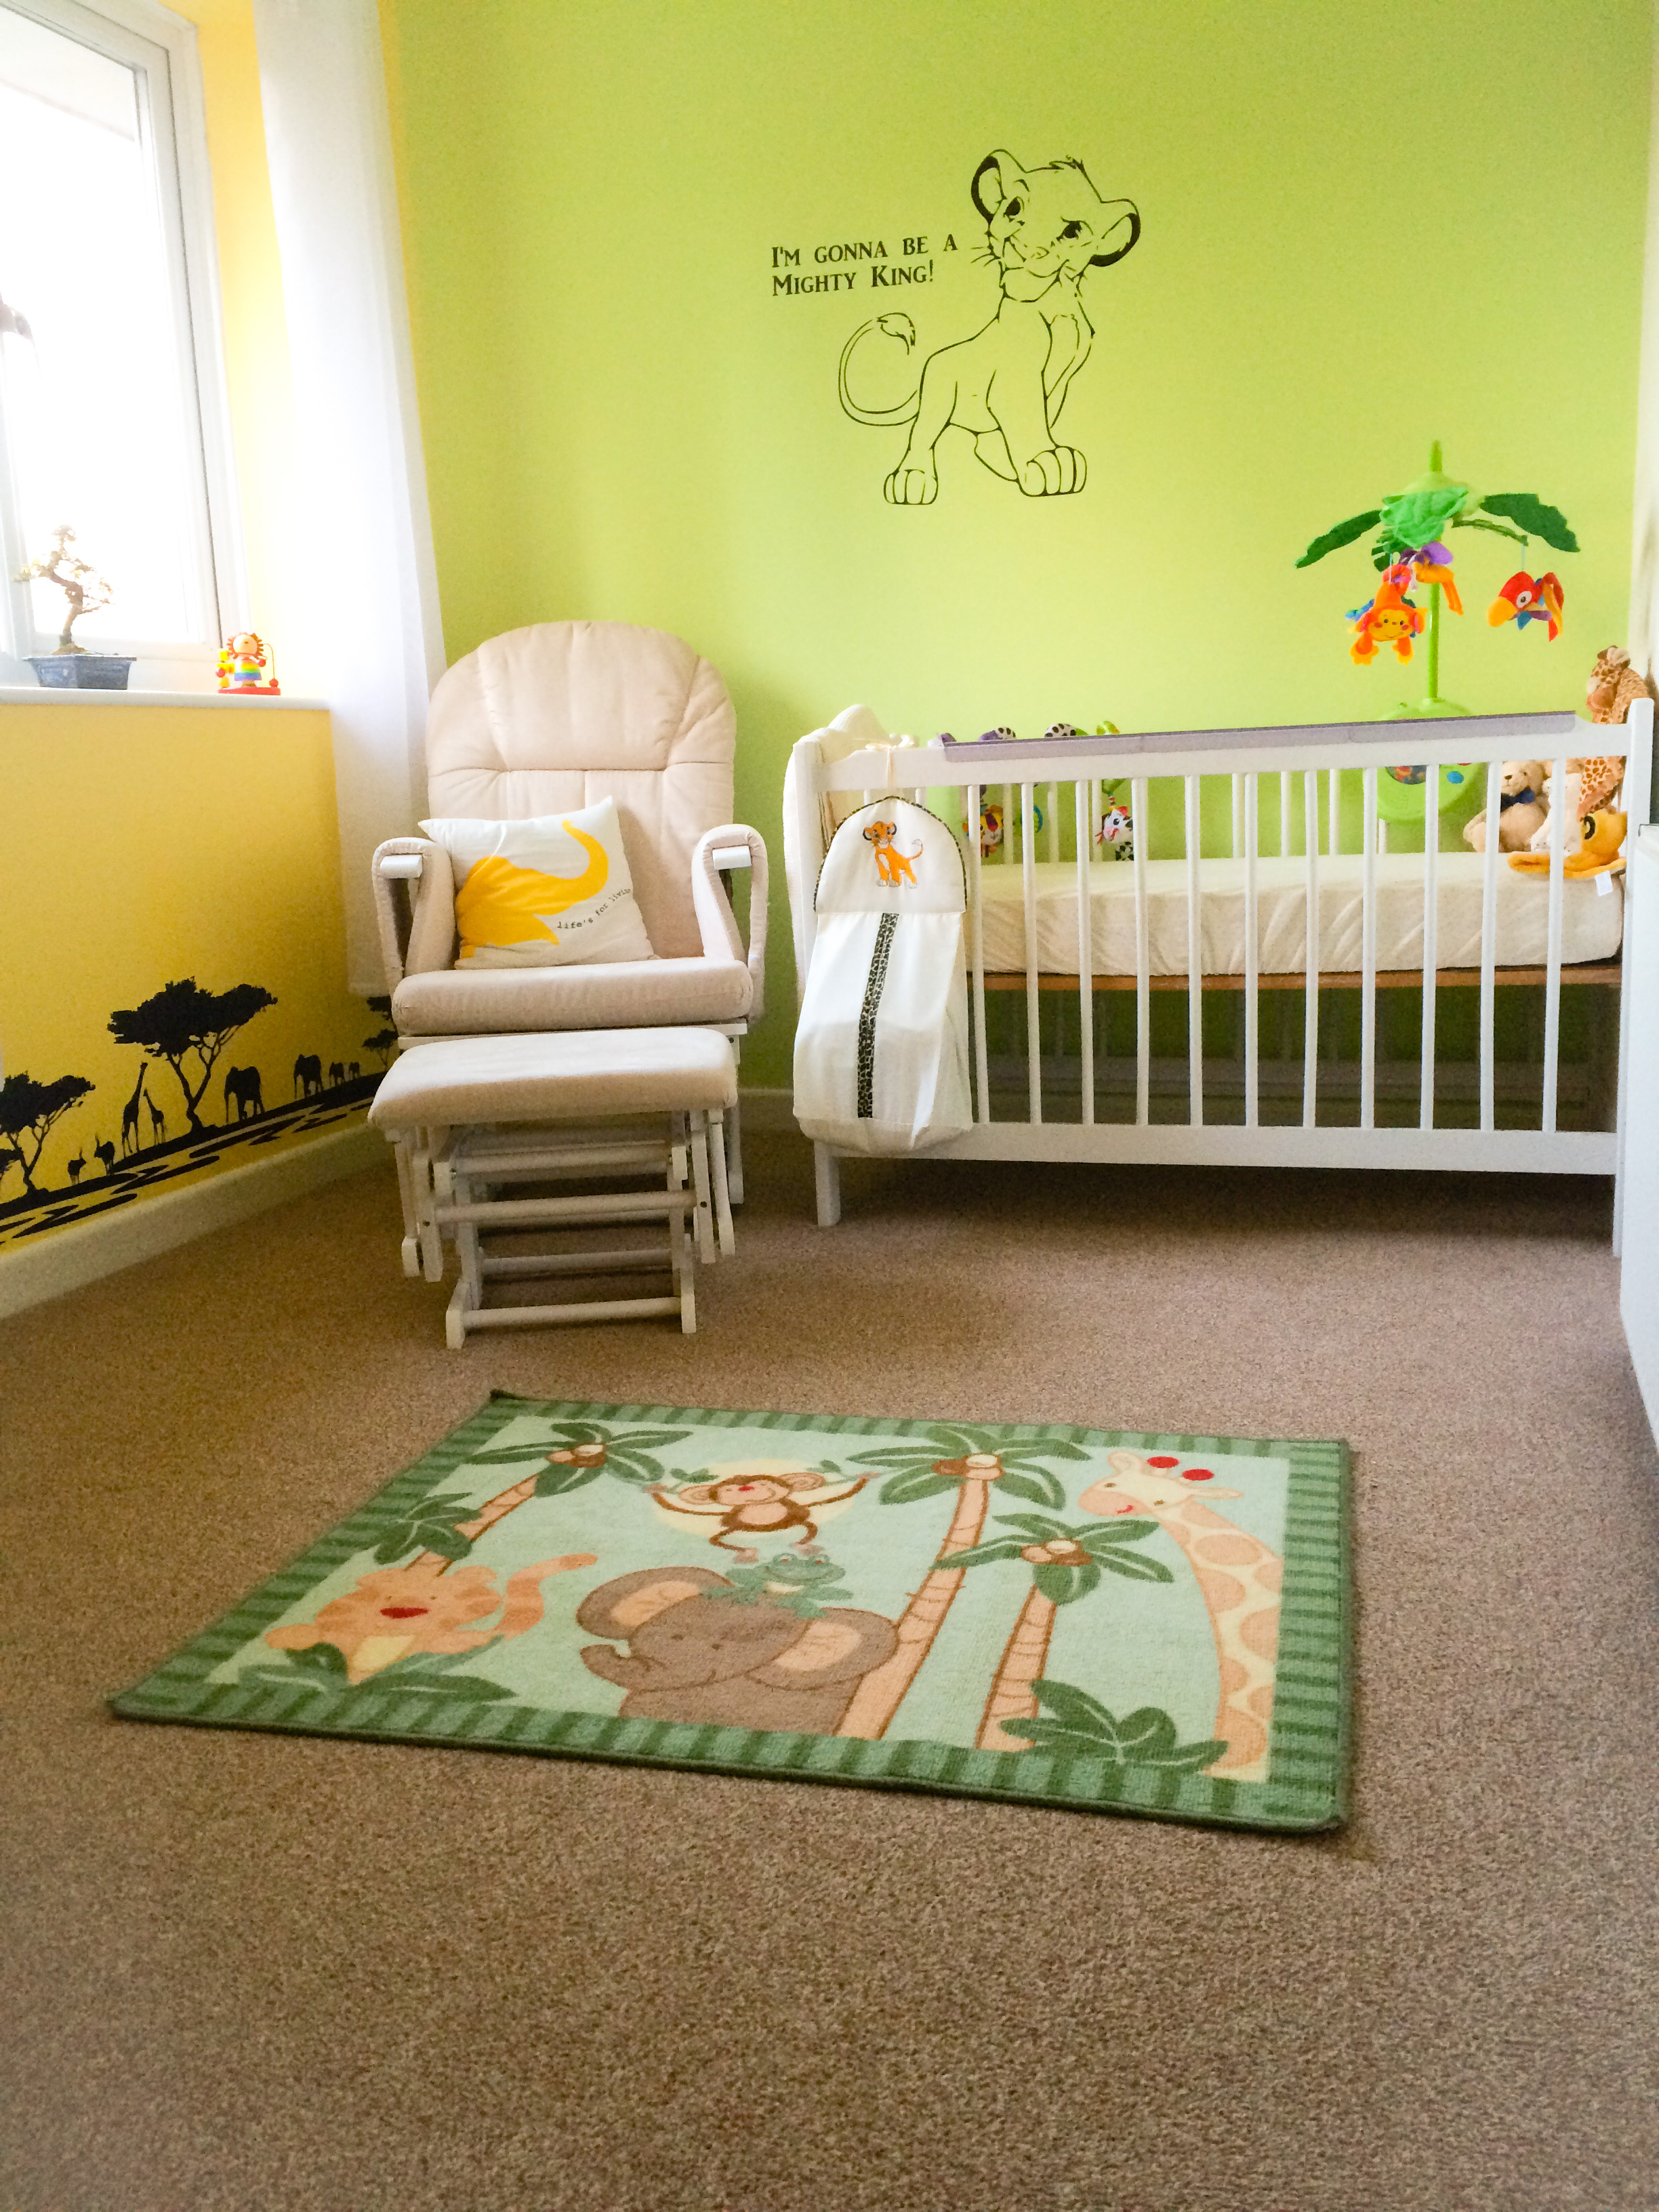 Curtains By Dunelm. Cot Mobile By Fisher Price. Lion King (Simba) Nappy